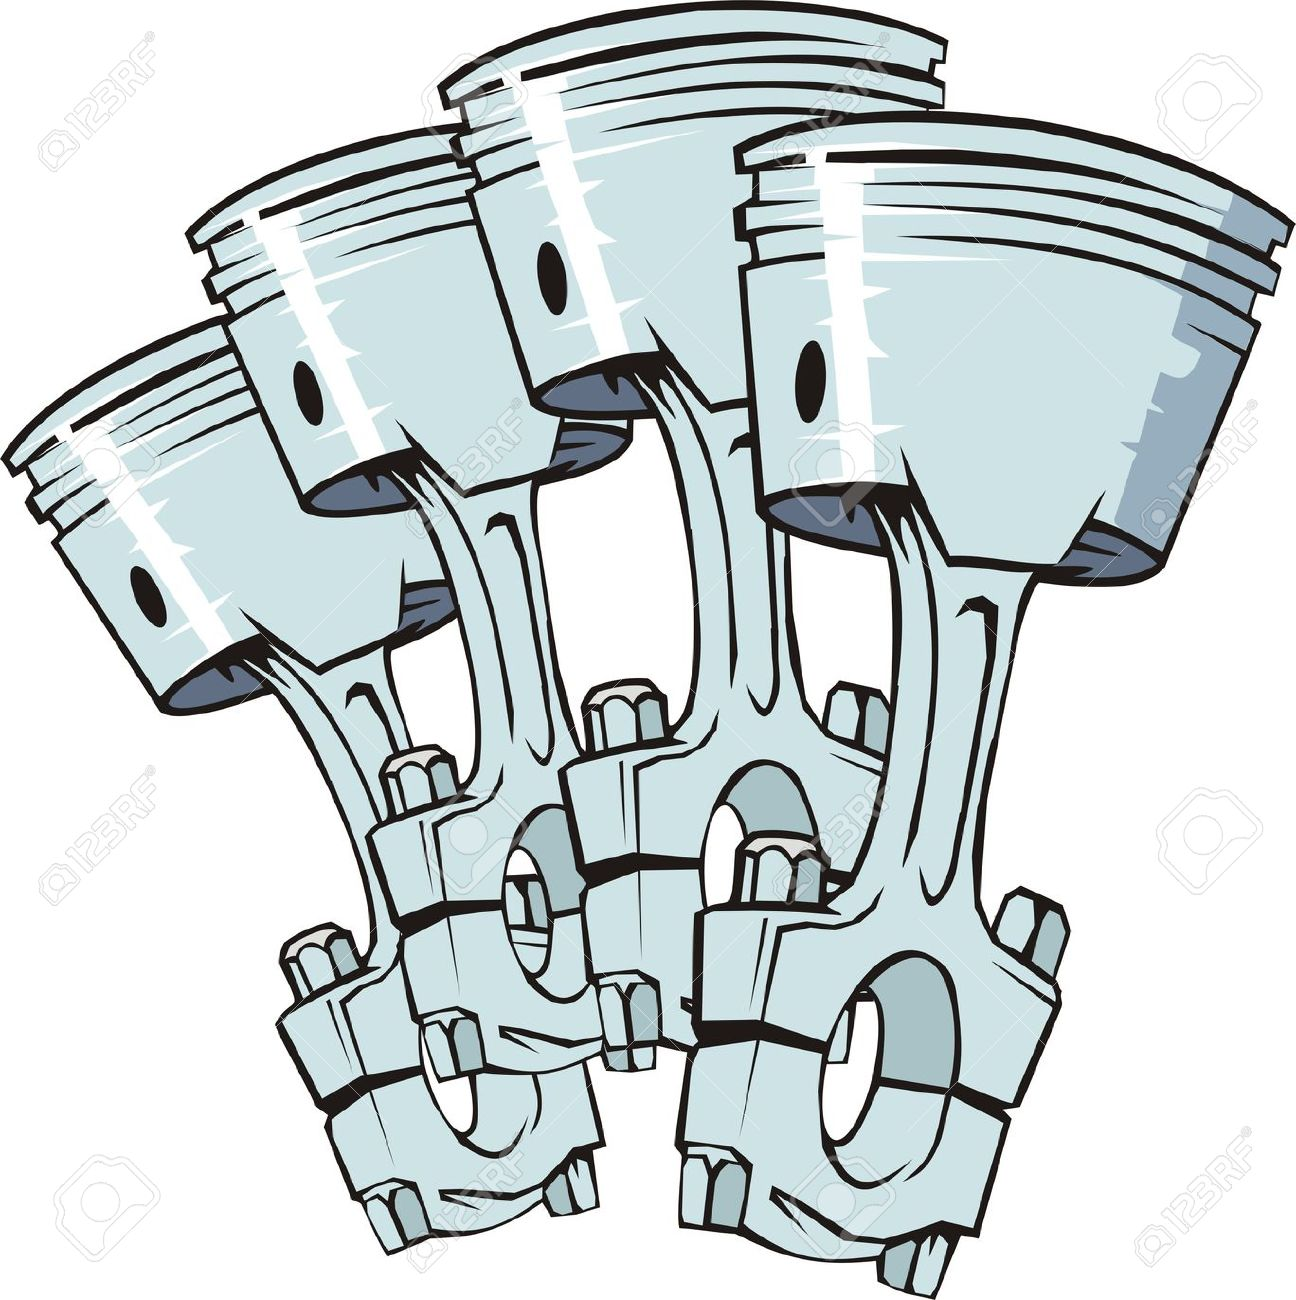 internal combustion engine clipart clipground